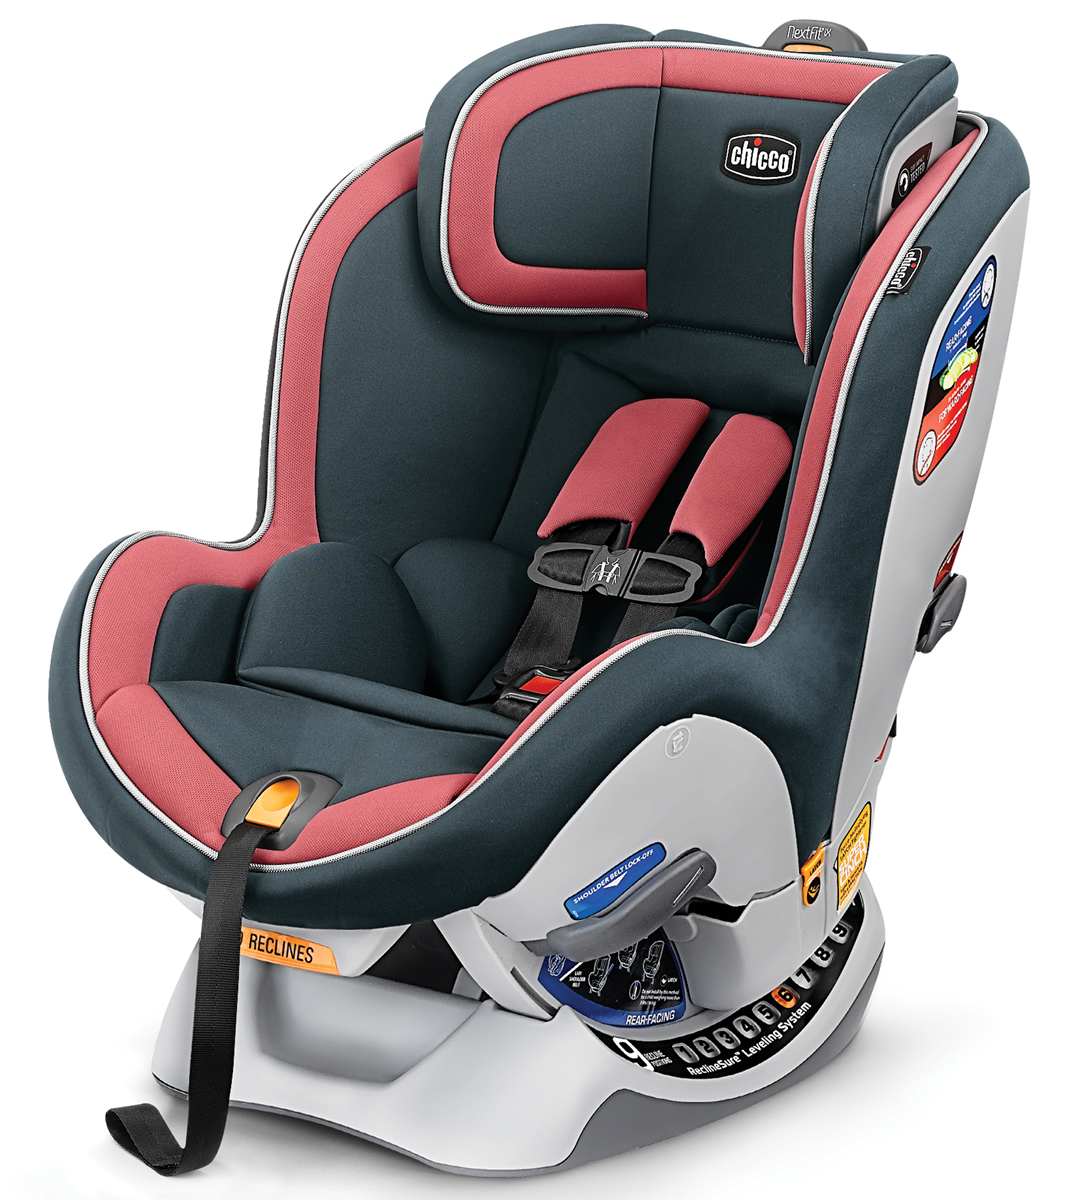 Chicco Nextfit Ix Convertible Car Seat Seacoral